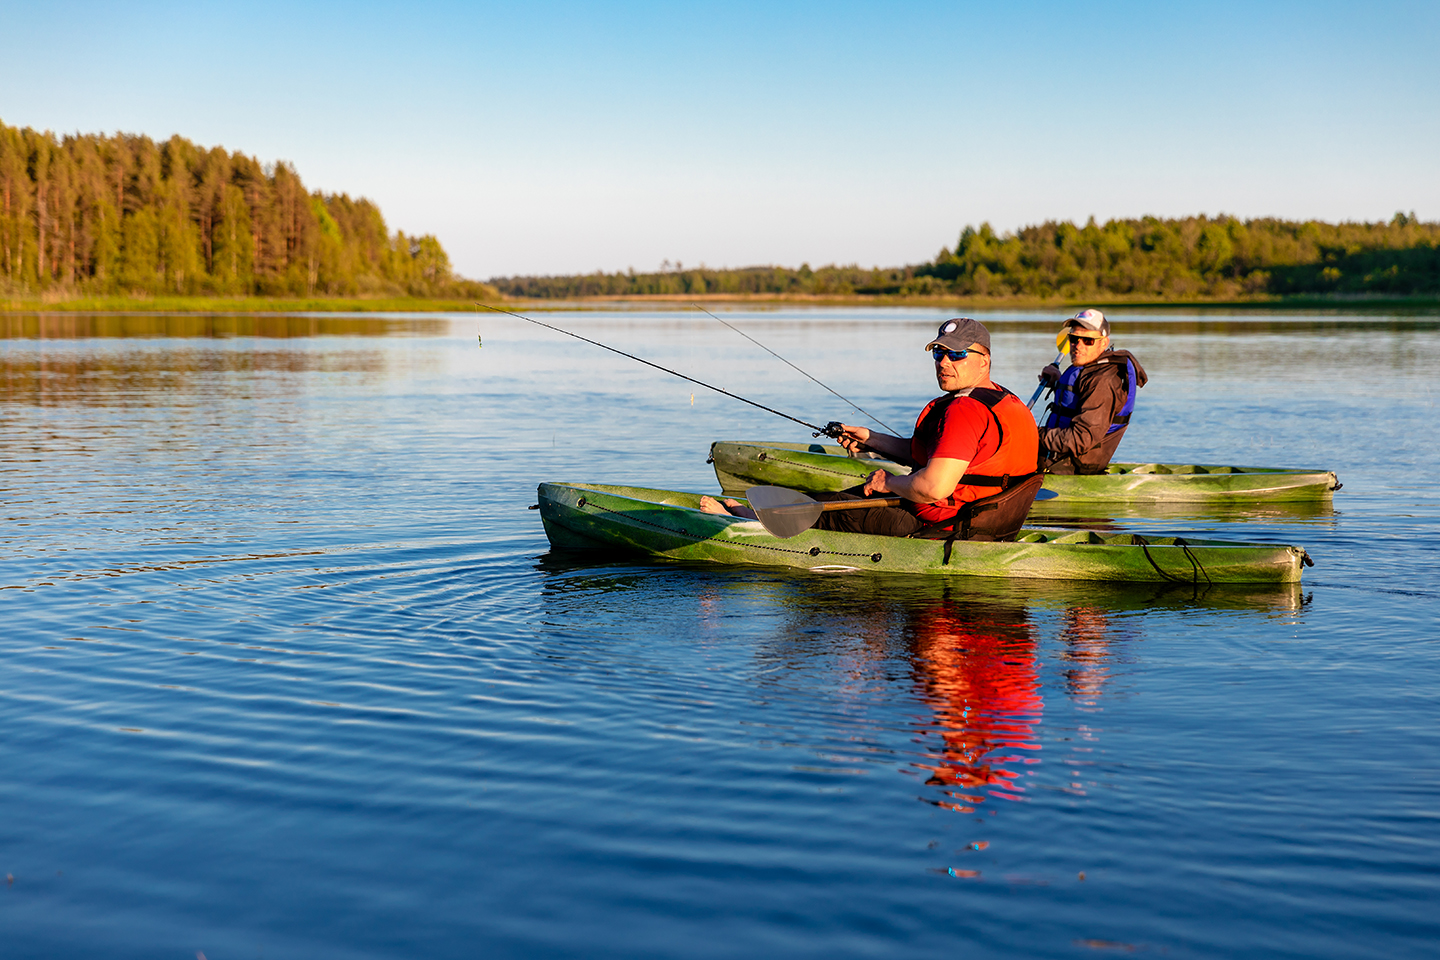 Two men kayak fishing together on a lake as part of a fishing therapy session